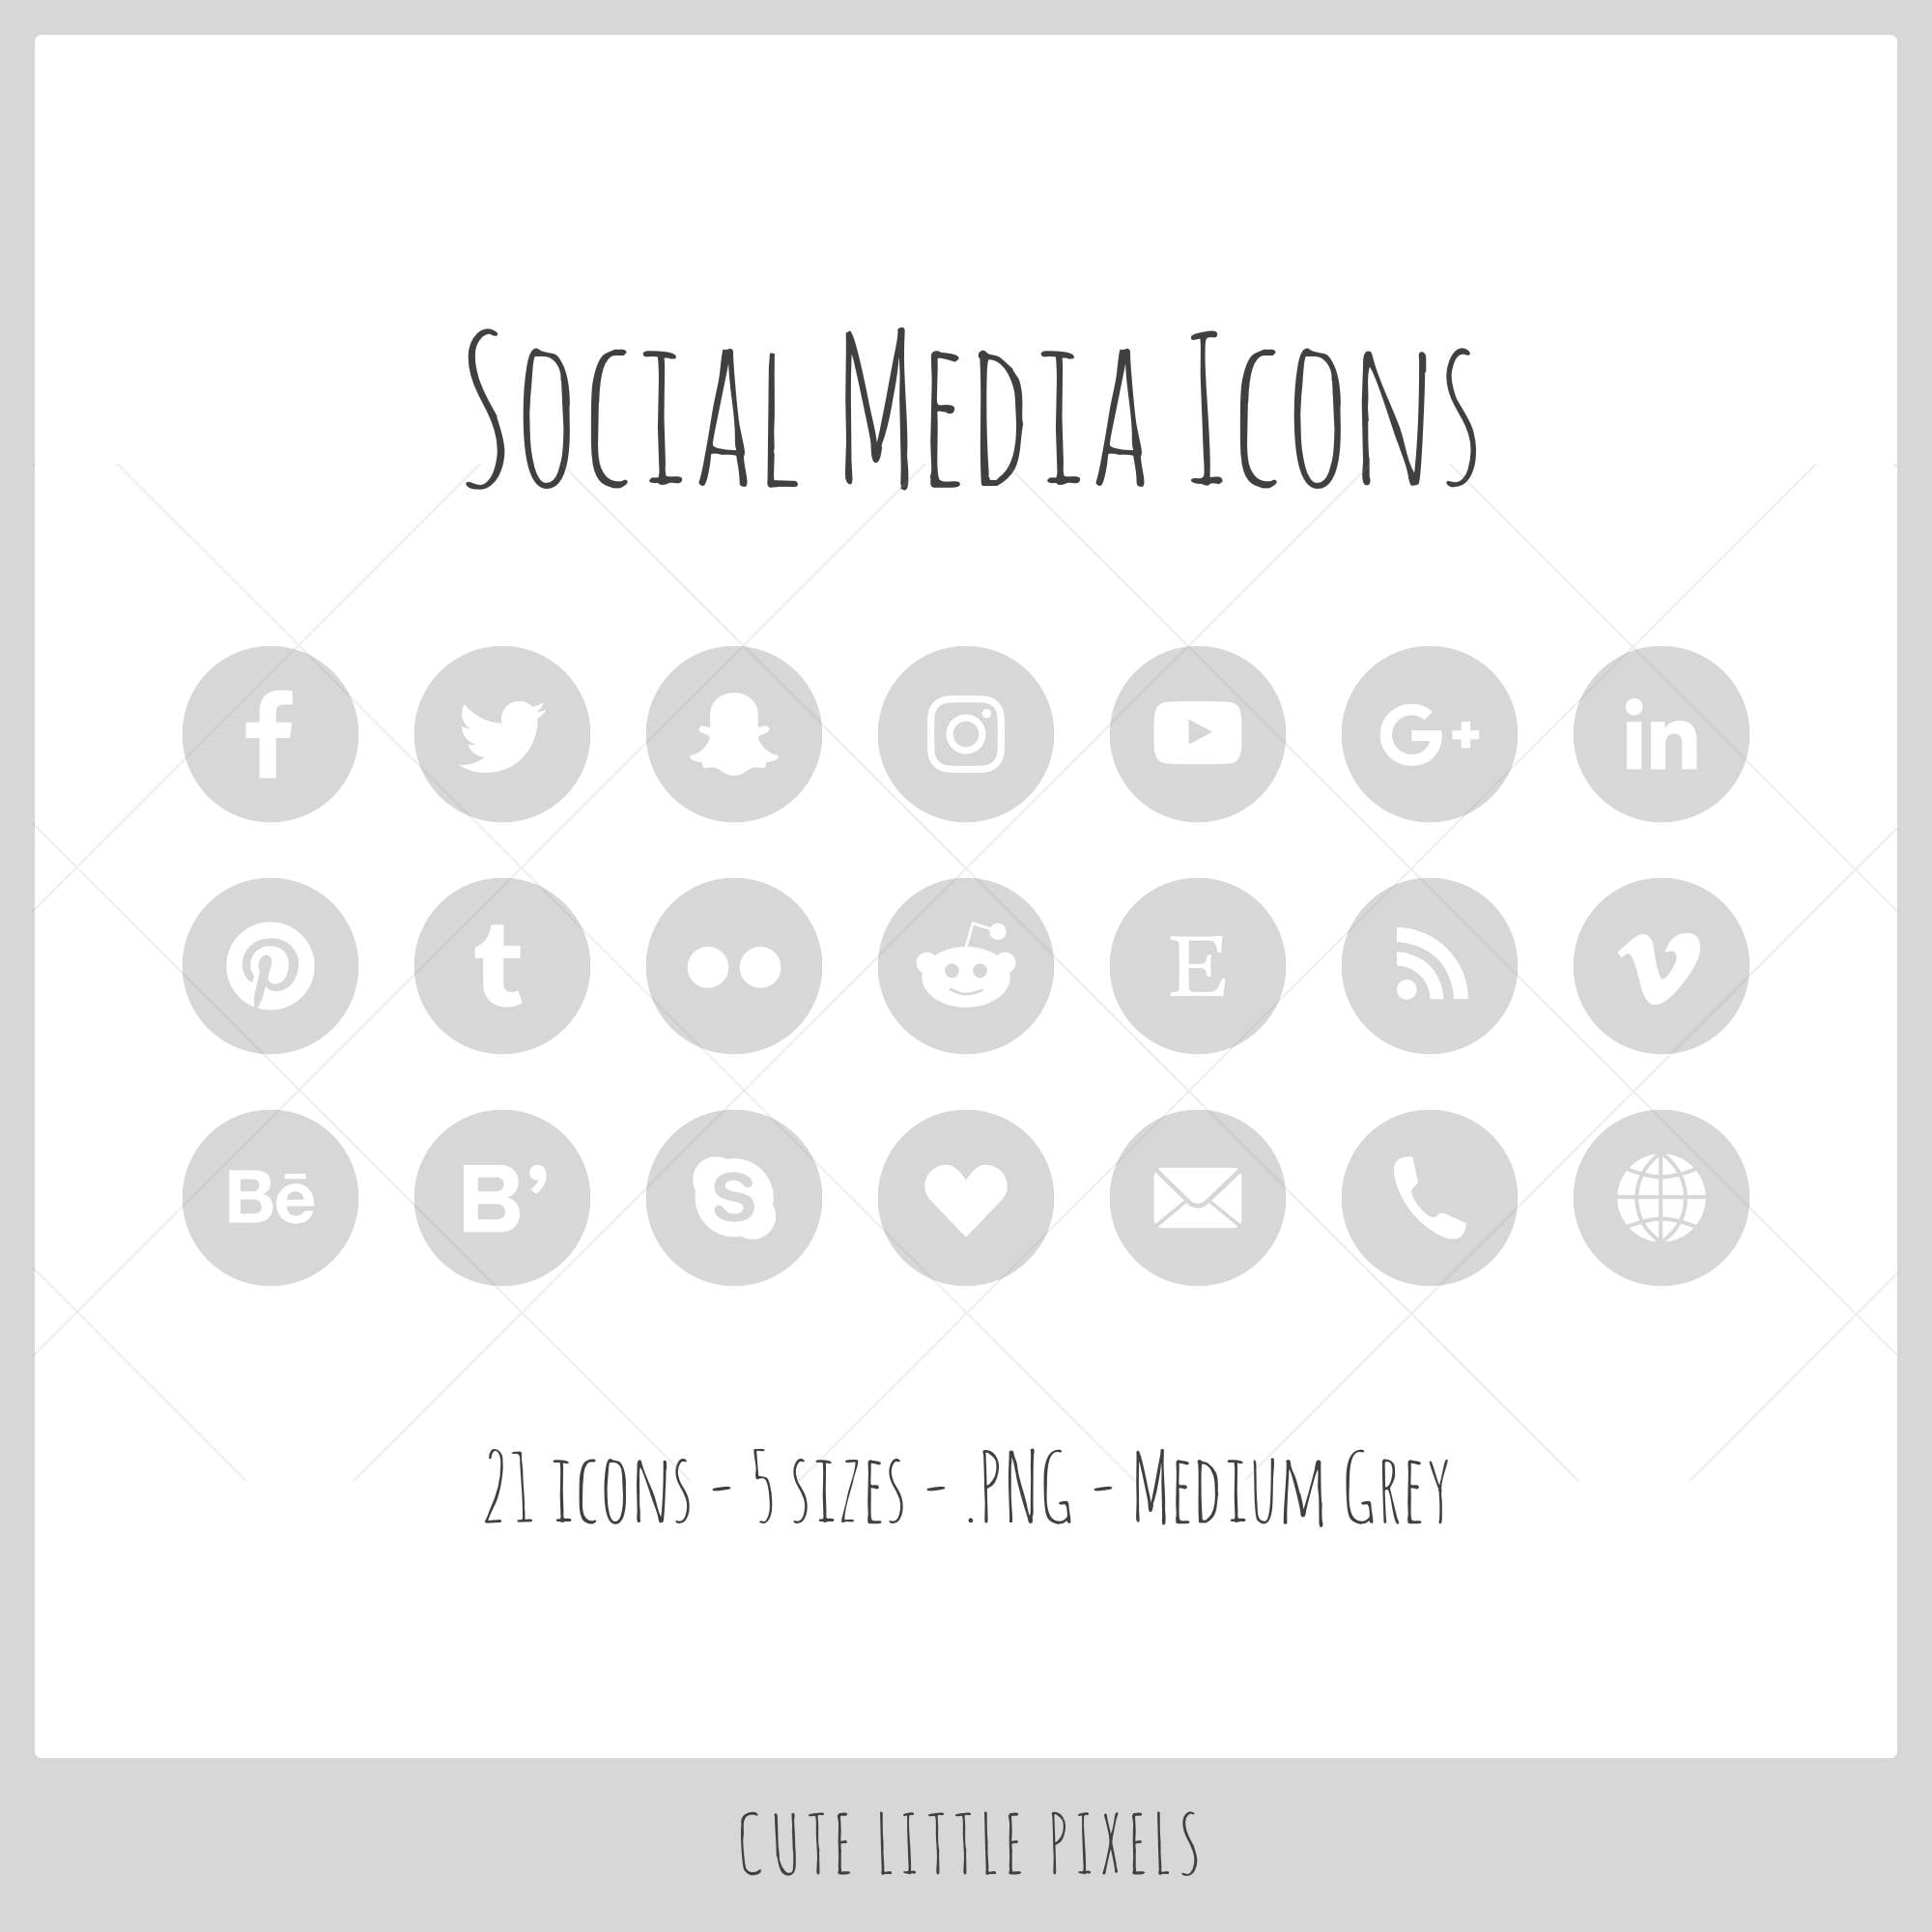 social media icons 21 icons in 5 sizes medium gray png etsy